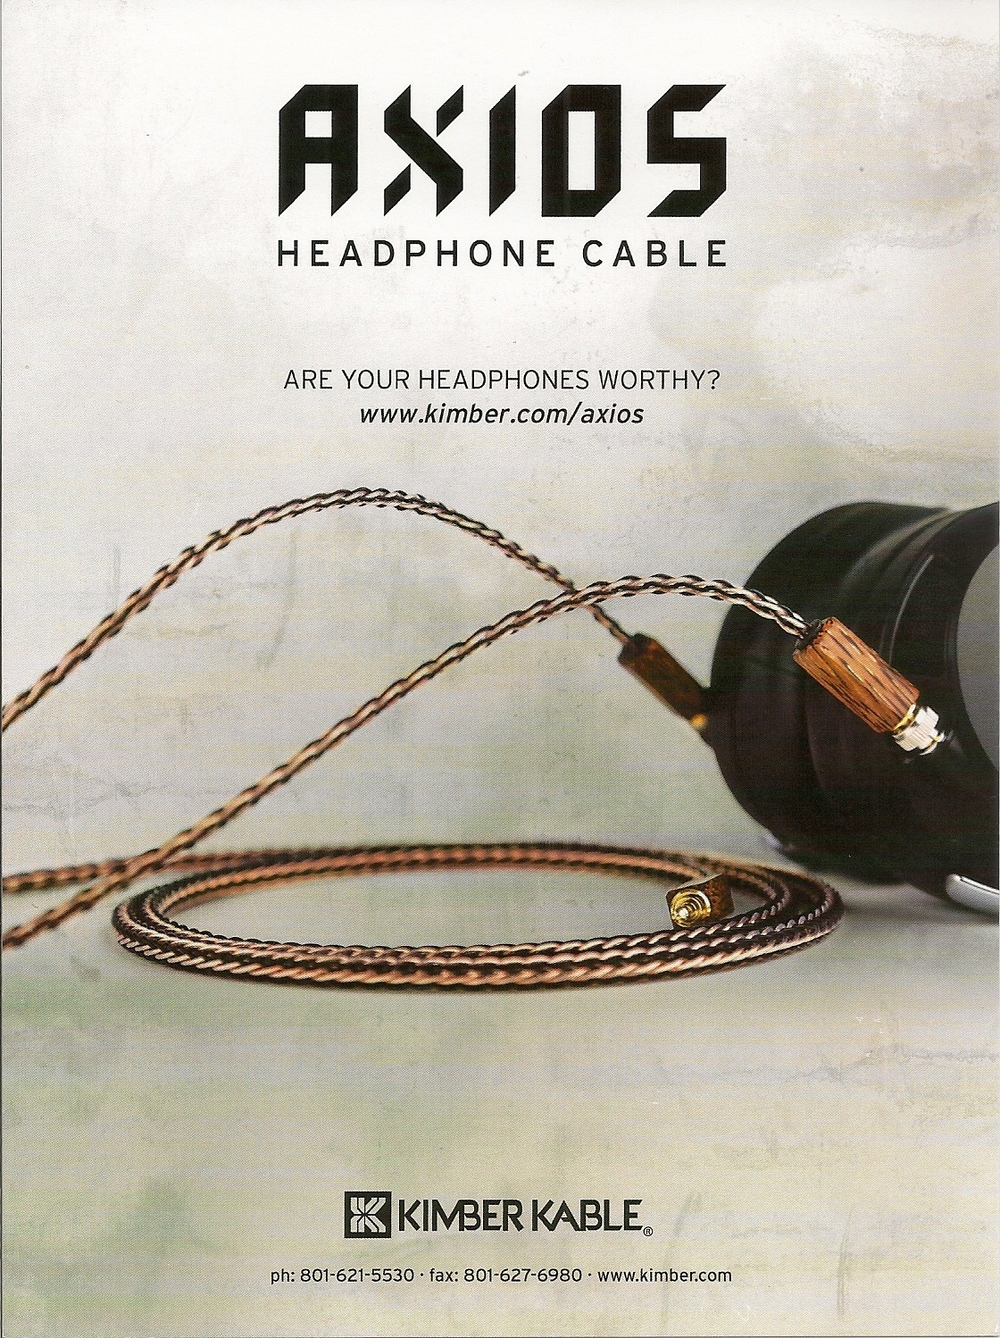 AXIOS is a new custom cable from industry leaders Kimber Kable just for the headphone enthusiasts please contact us at info@headphneaudiophile.com